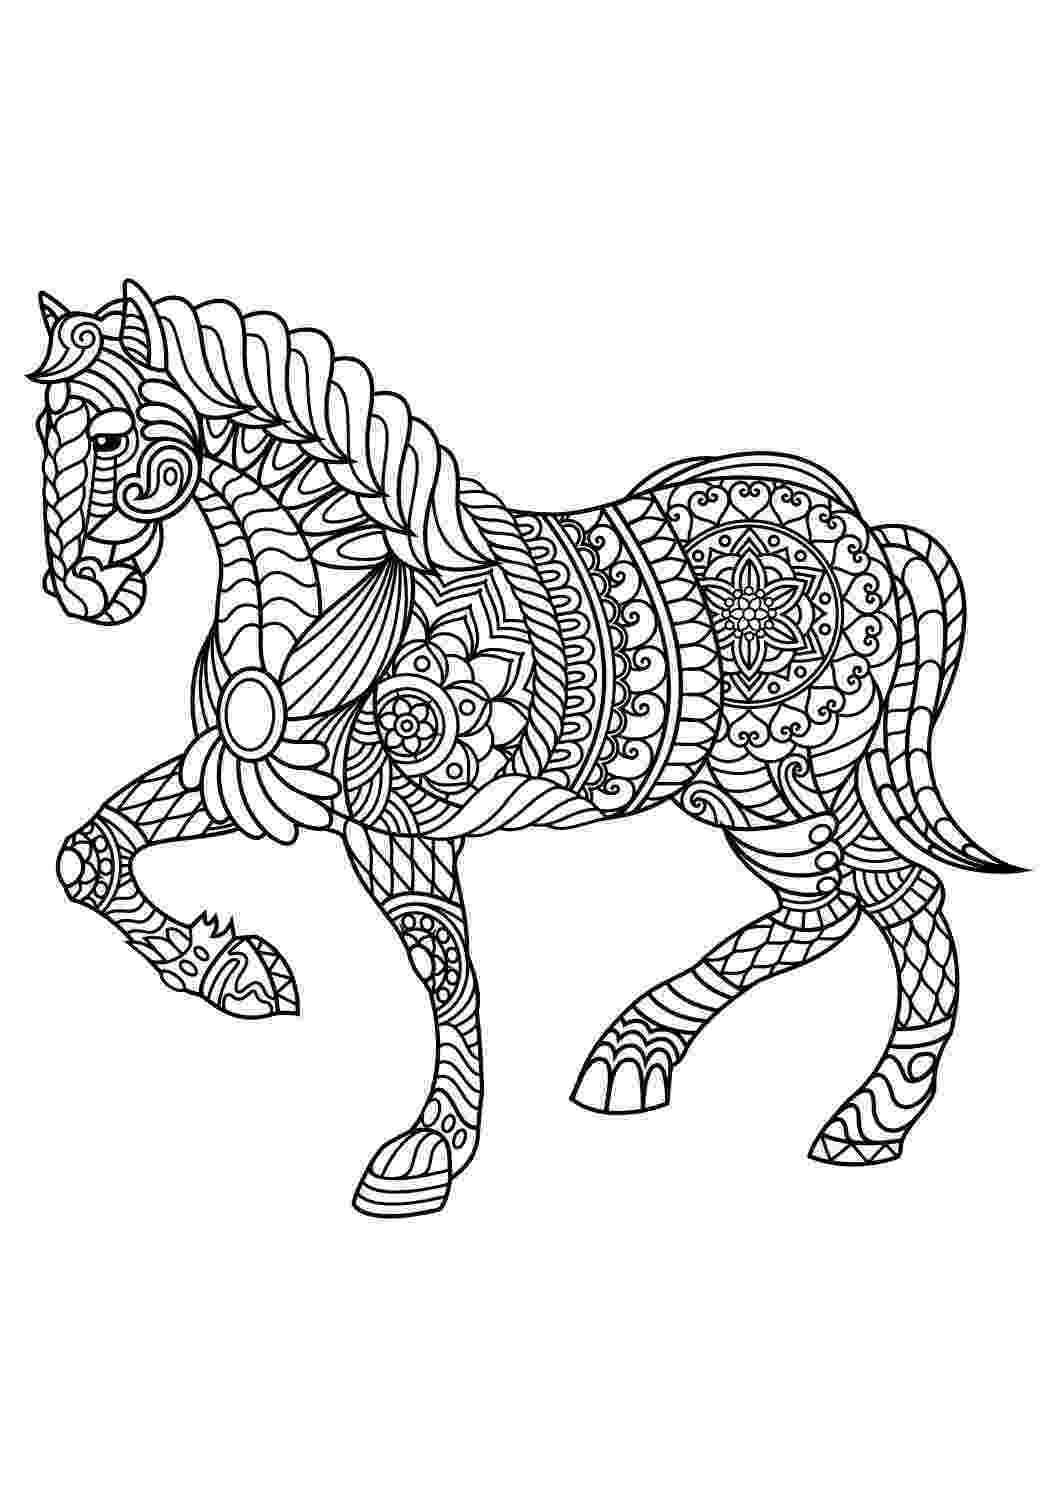 free animal coloring pages animal coloring pages pdf horse coloring pages mandala pages coloring free animal